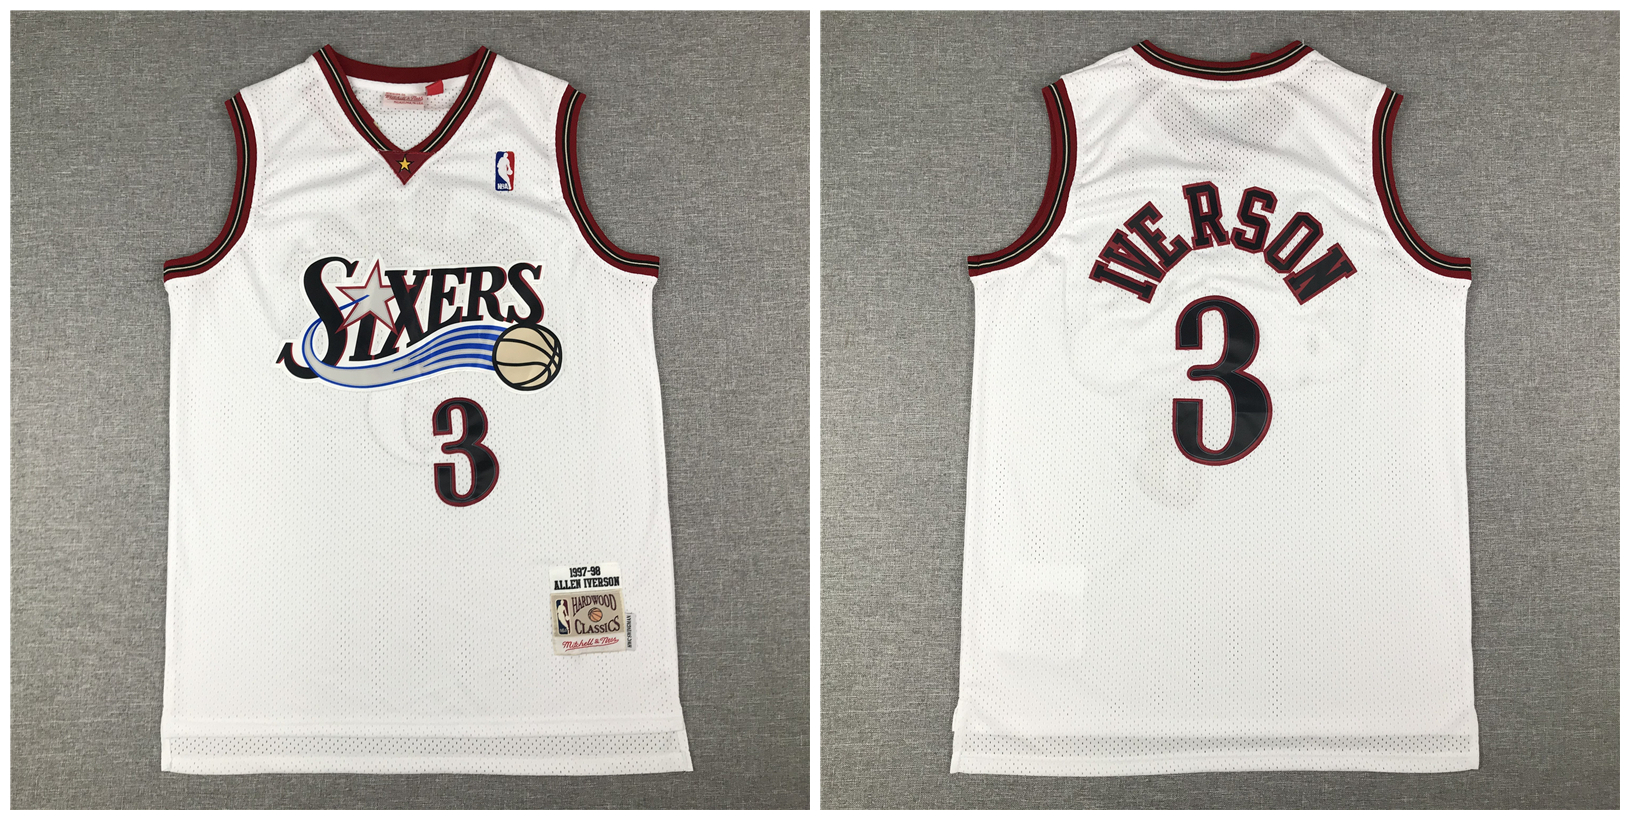 76ers 3 Allen Iverson White 1997-98 Hardwood Classics Mesh Jersey